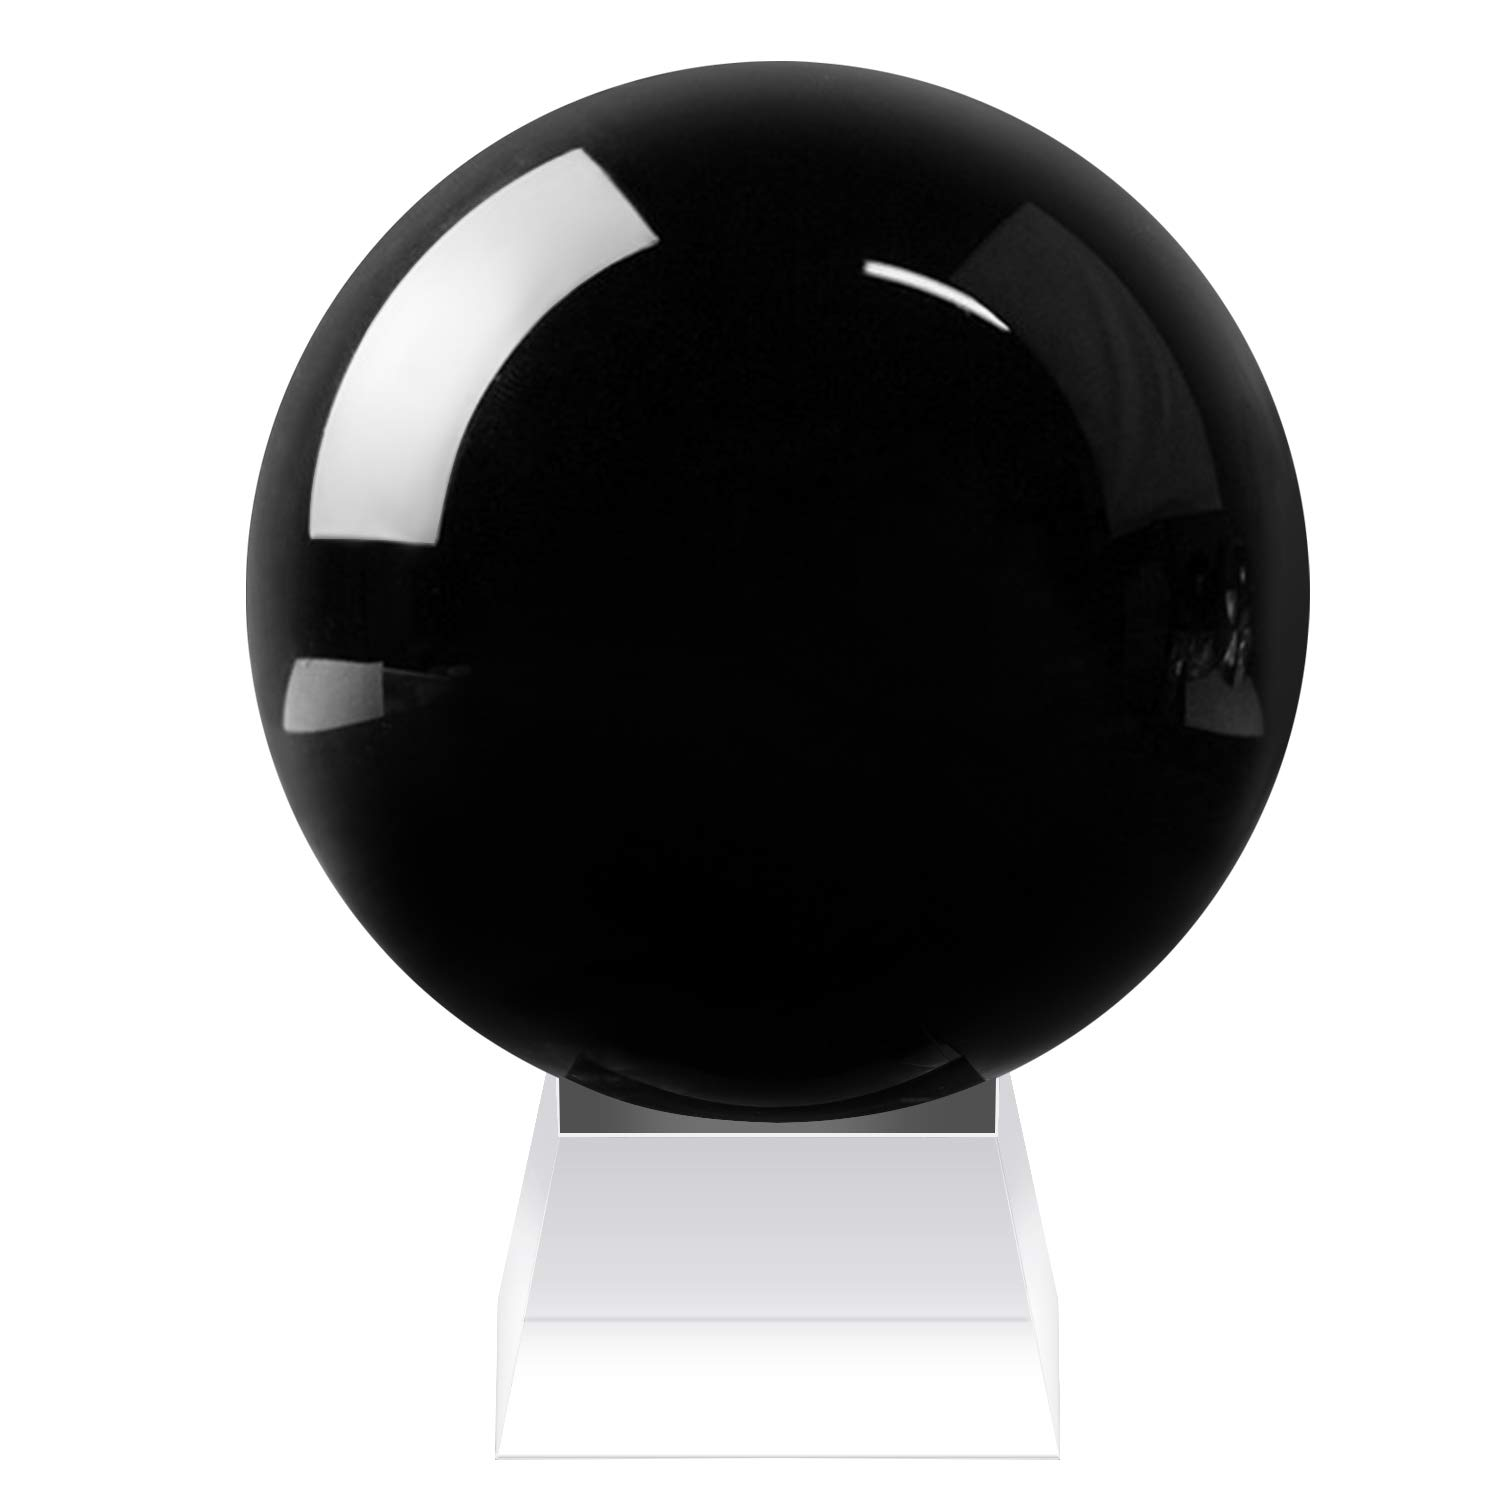 Neewer 110mm/ 4.33inches Black Crystal Ball Globe with a Crystal Stand for Feng Shui/Divination or Wedding/Home/Office Decoration